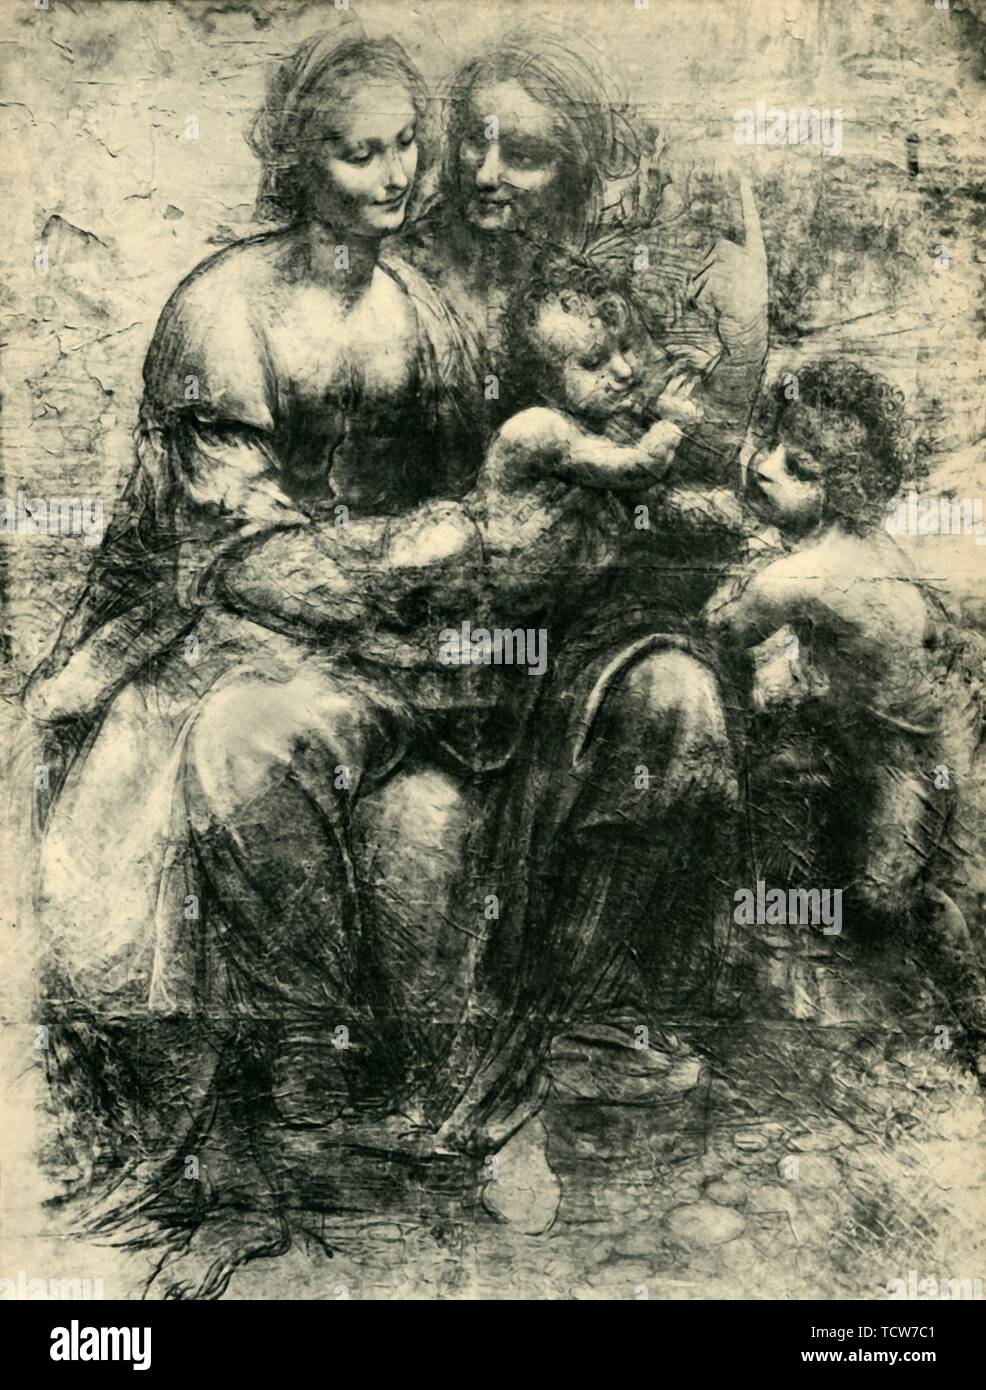 """The Virgin and Child with St Anne and St John the Baptist, (The Burlington House Cartoon), 1499-1500, (1943). The Virgin Mary sits on the lap of her mother, Saint Anne as the Christ Child blesses his cousin Saint John the Baptist. Drawing in the National Gallery, London. From """"Europäische Handzeichnungen"""", (Five Hundred Years of European Drawings), by Bernhard Degenhart. [Atlantis-Verlag Berlin, Zürich, 1943] - Stock Image"""